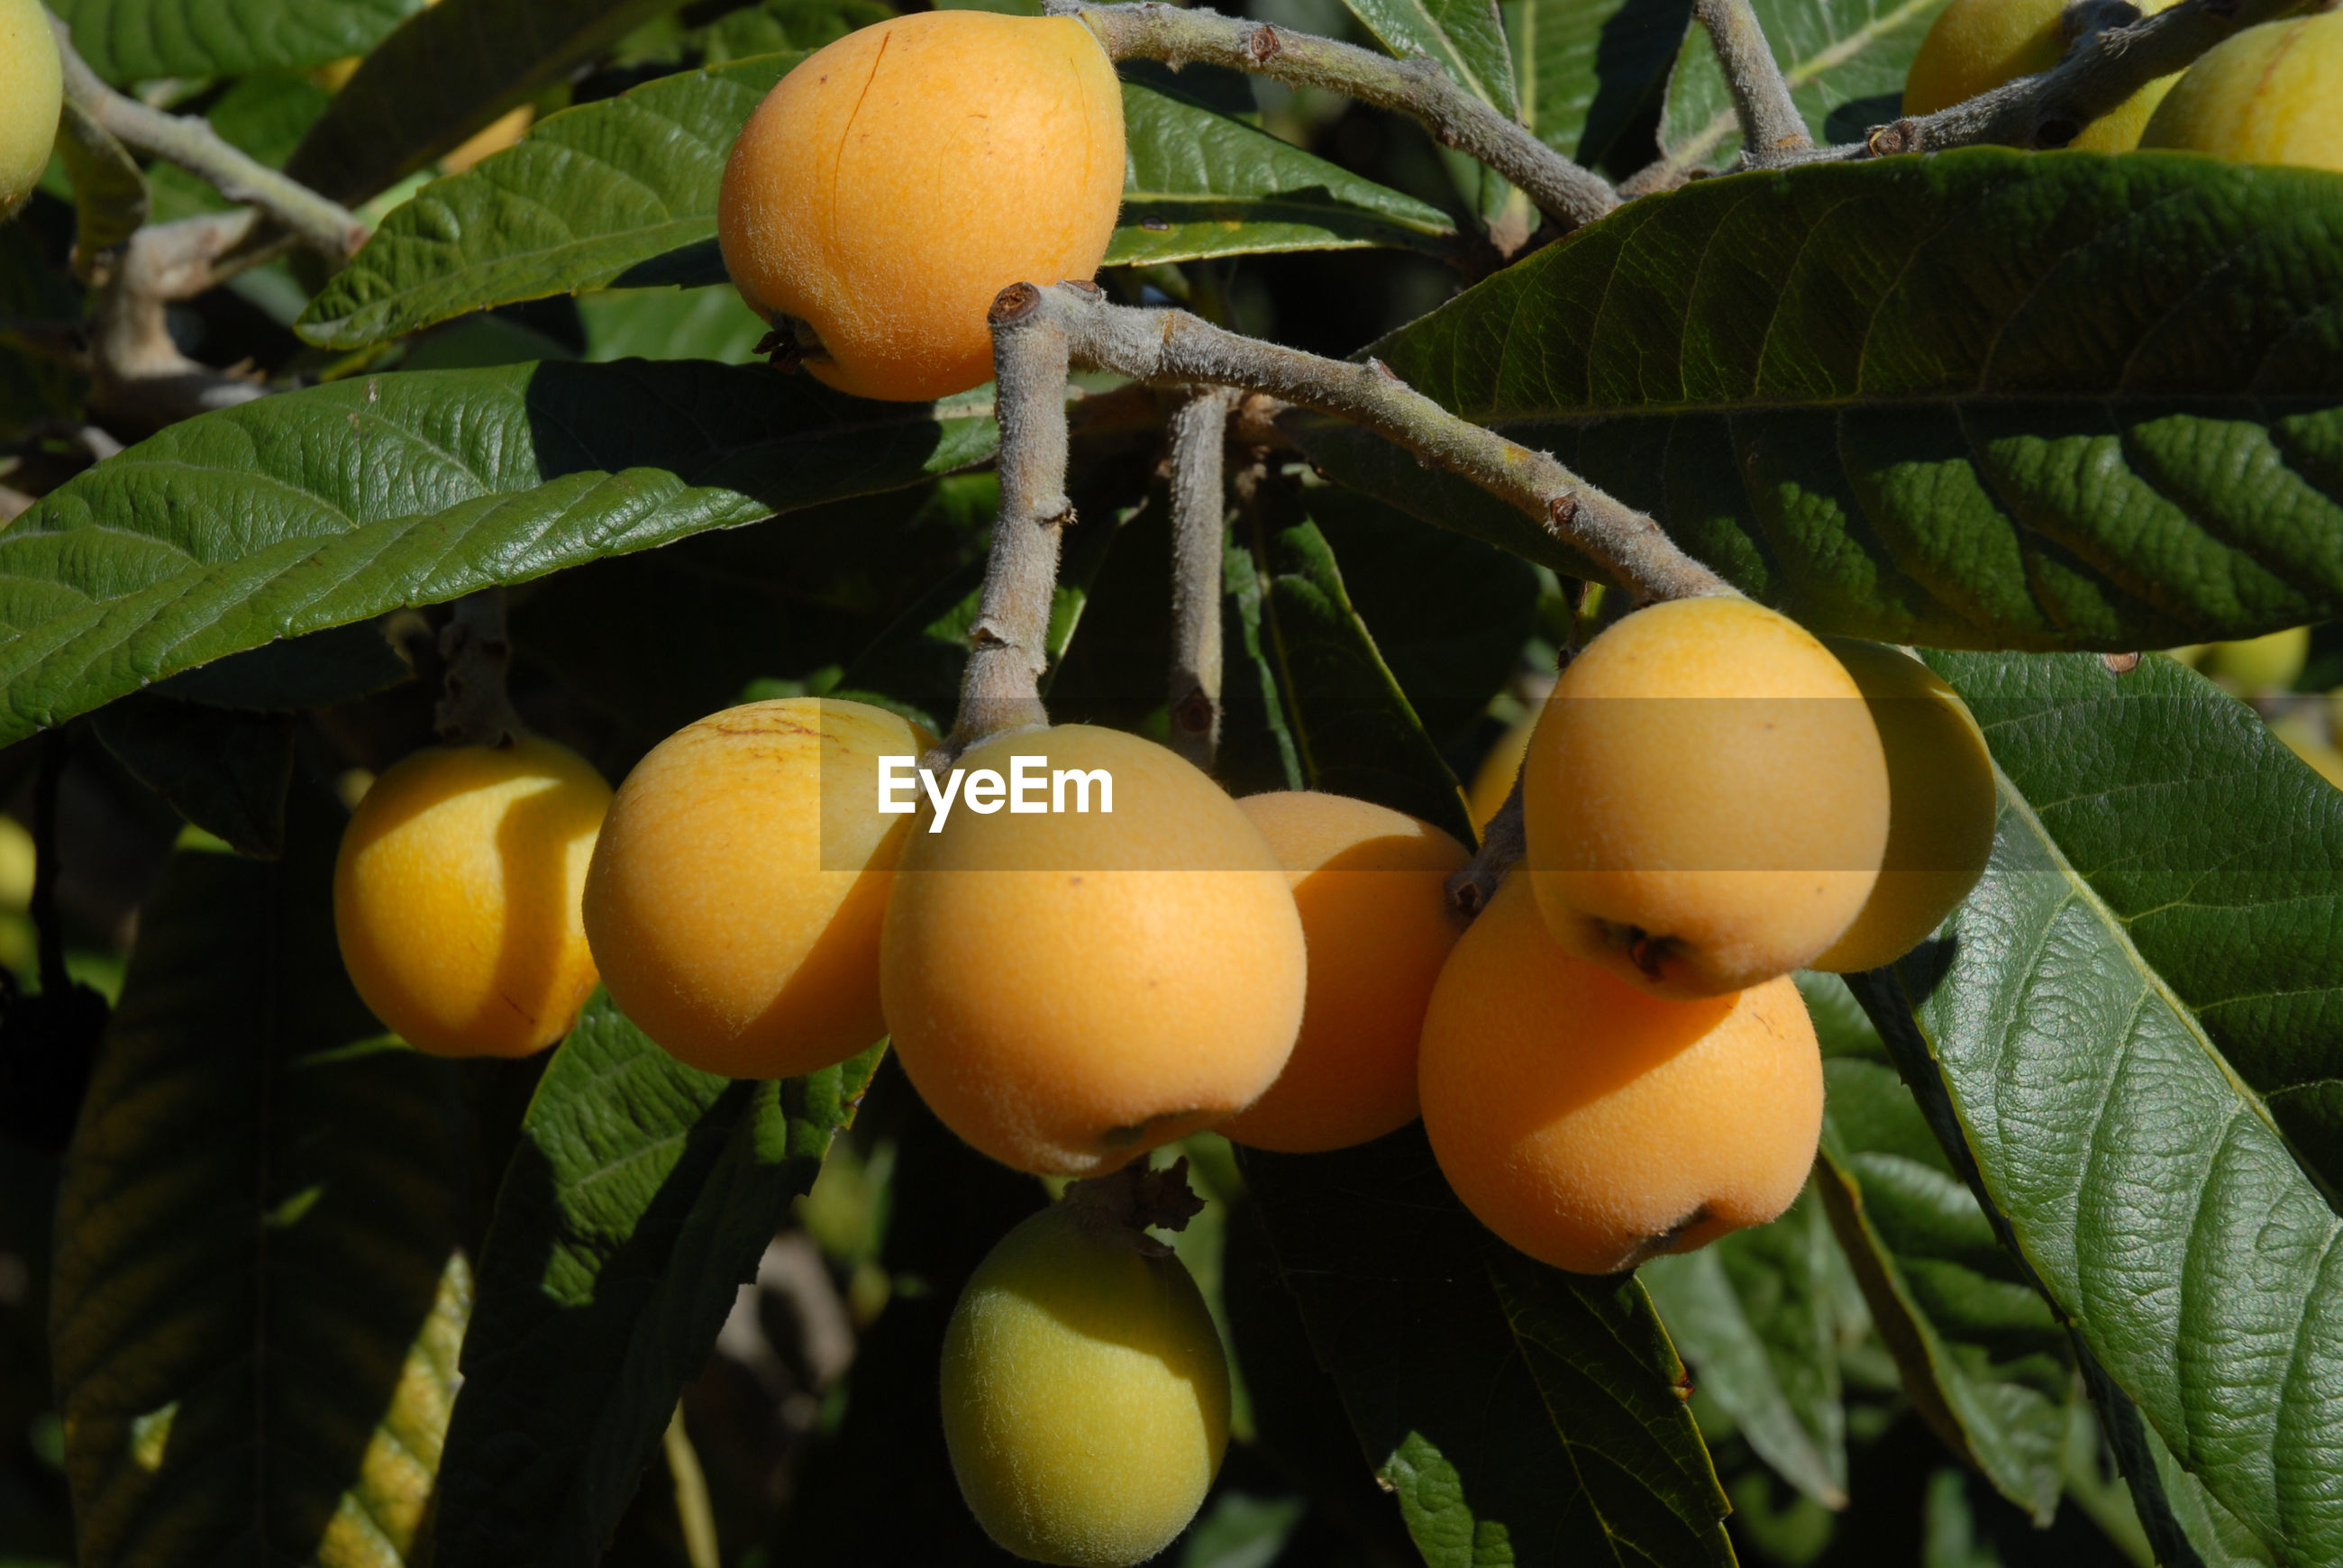 CLOSE-UP OF ORANGES GROWING ON PLANT